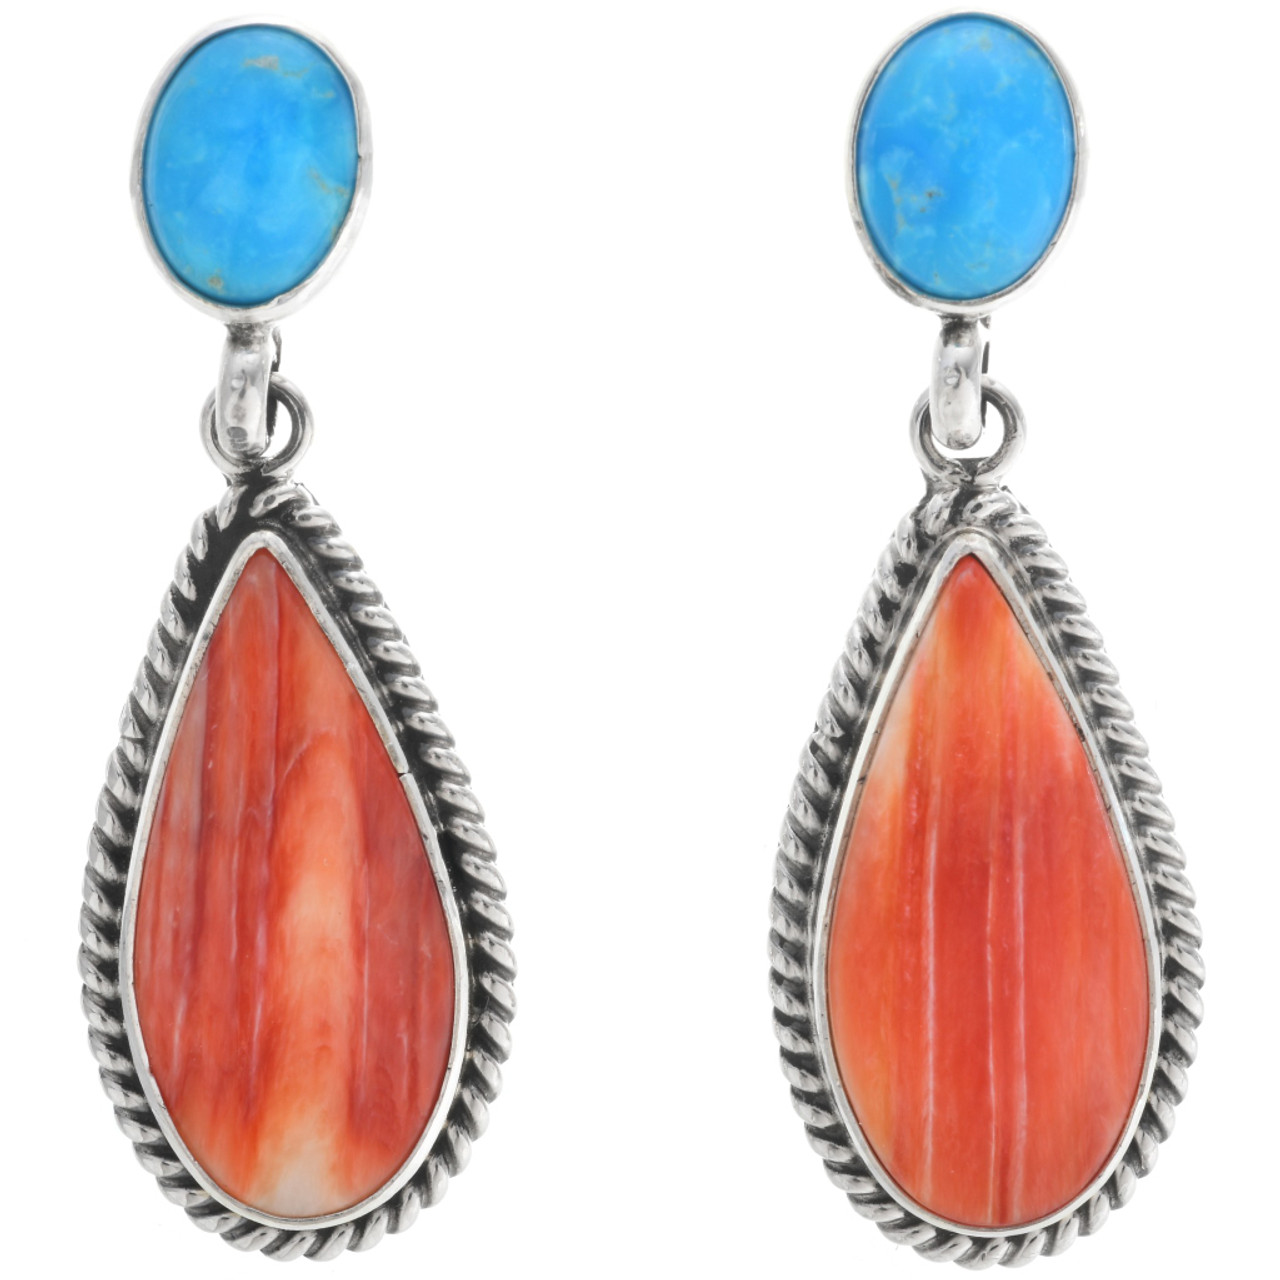 Spiny Oyster Shell Earrings Small Dangle Sterling Silver Hook Hand Carved Orange